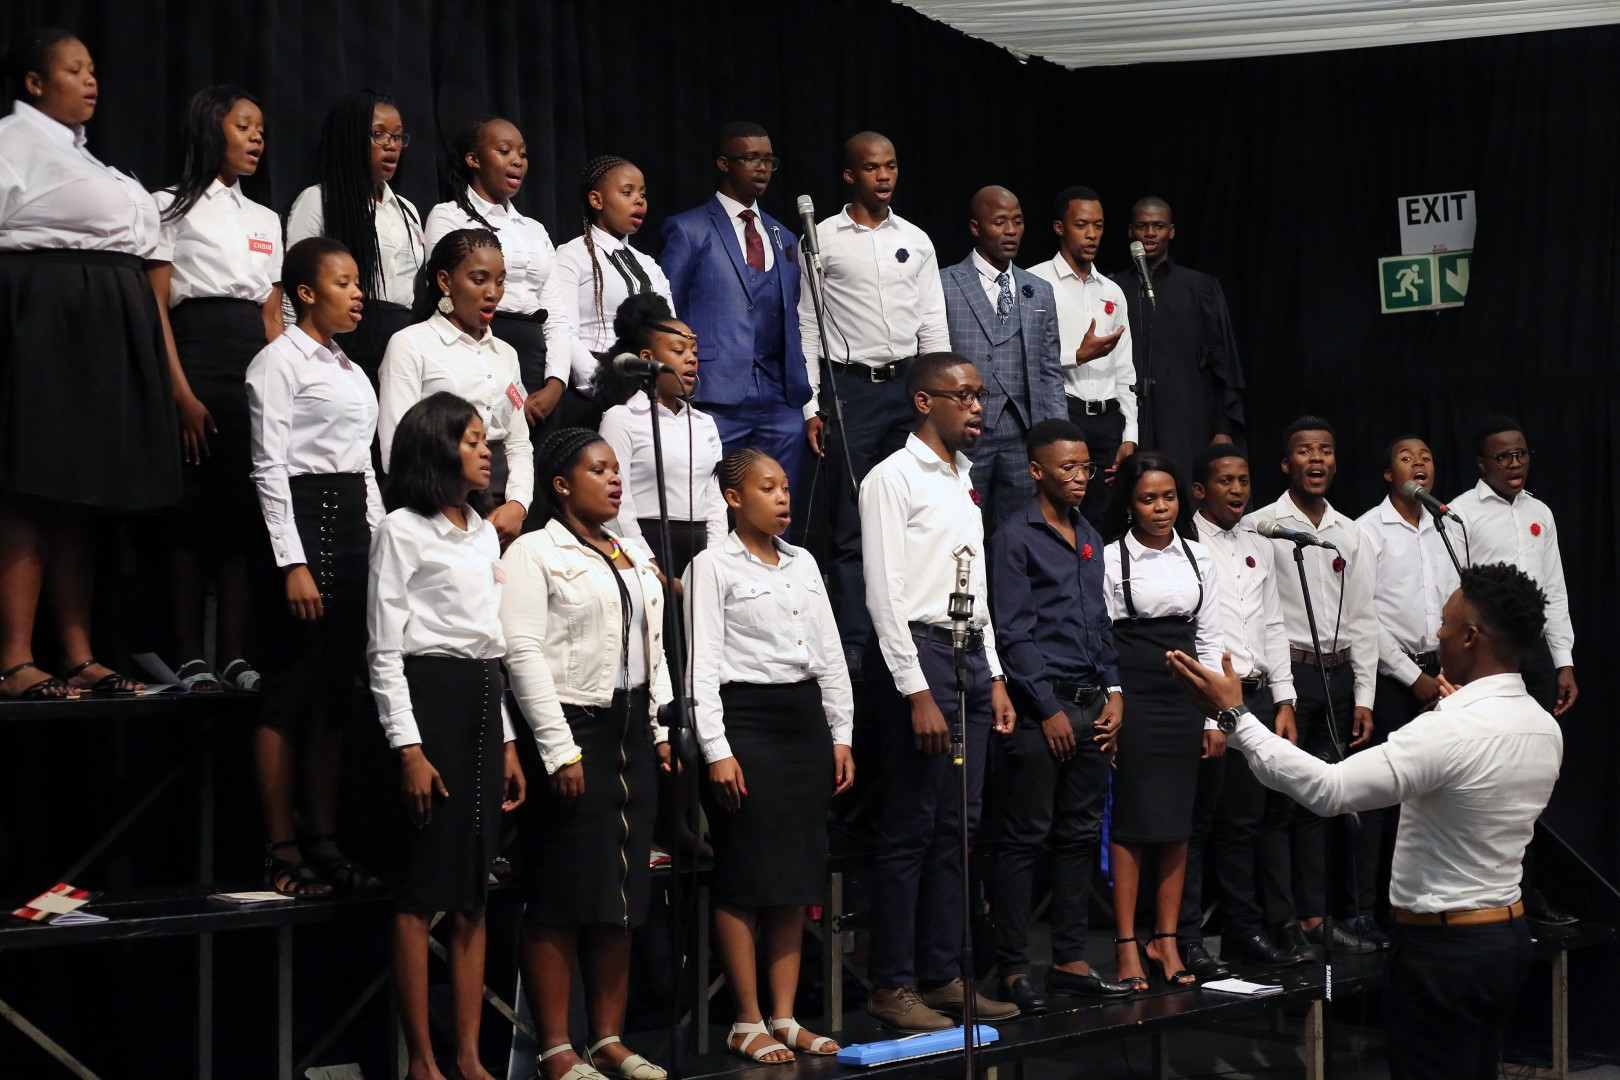 The UKZN PMB choir belts out its best